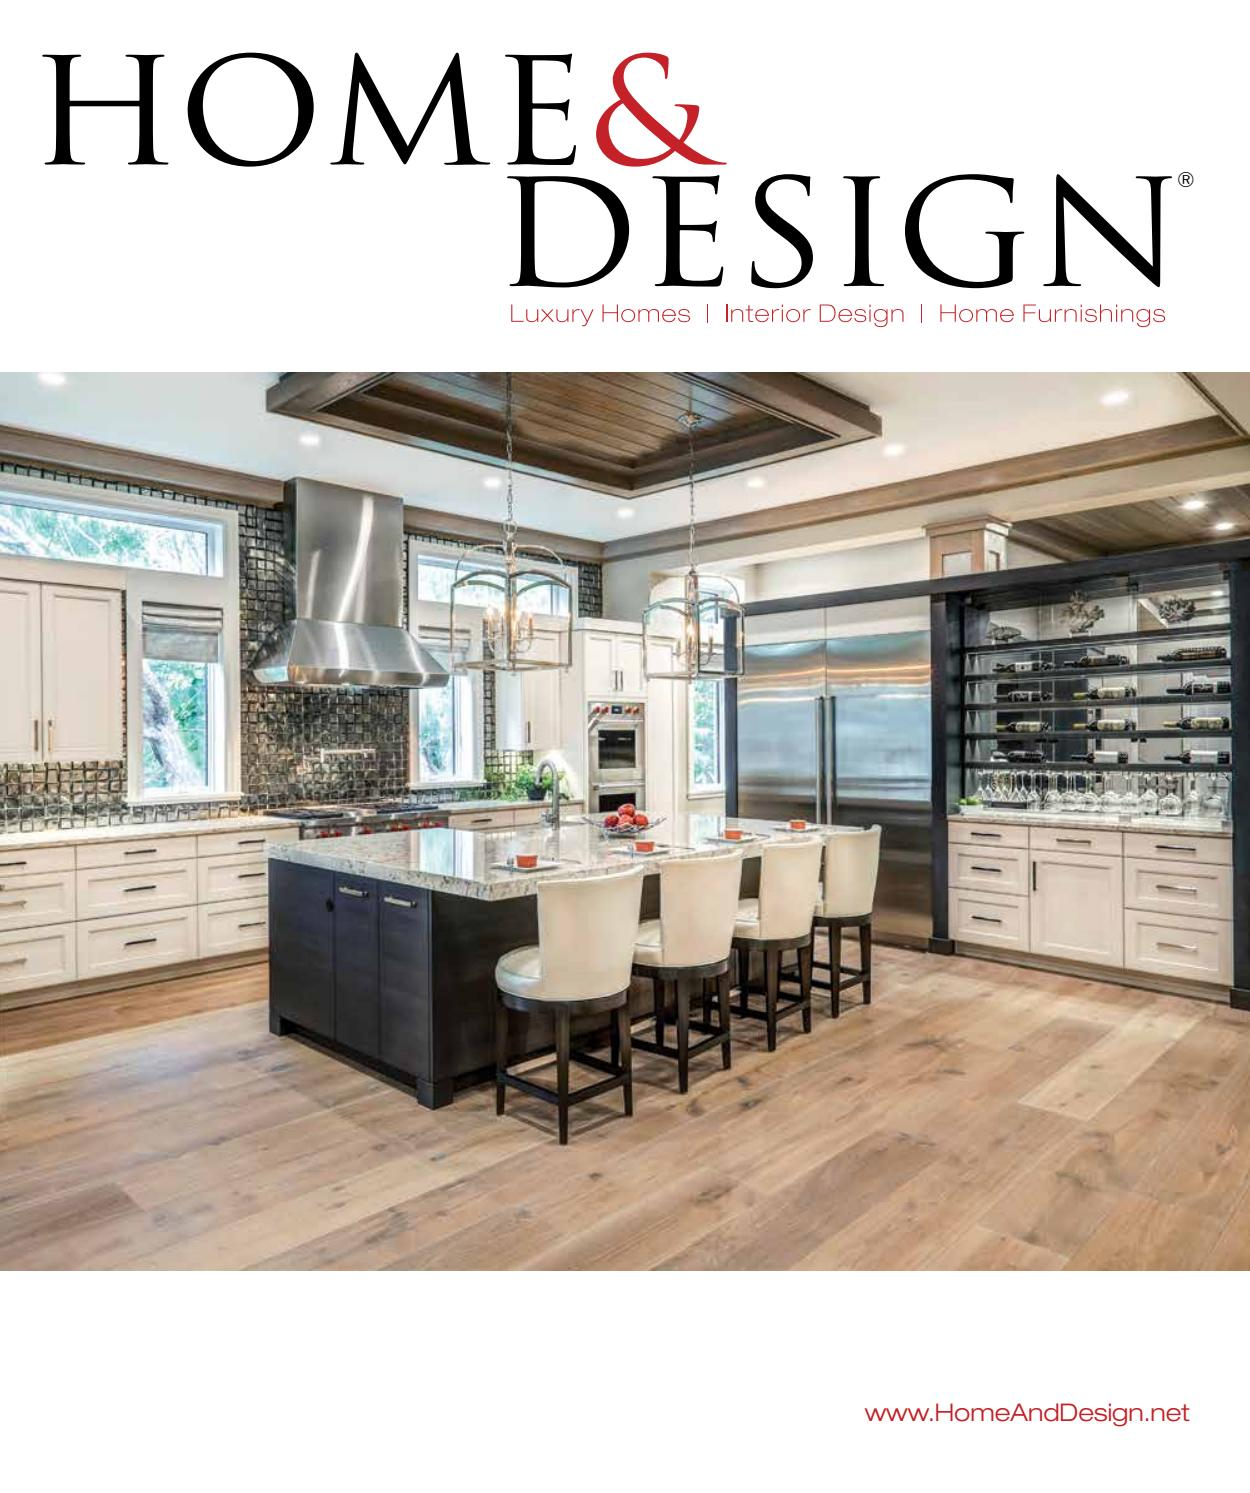 Top Home Design Magazine Annual Resource Guide Suncoast With Home